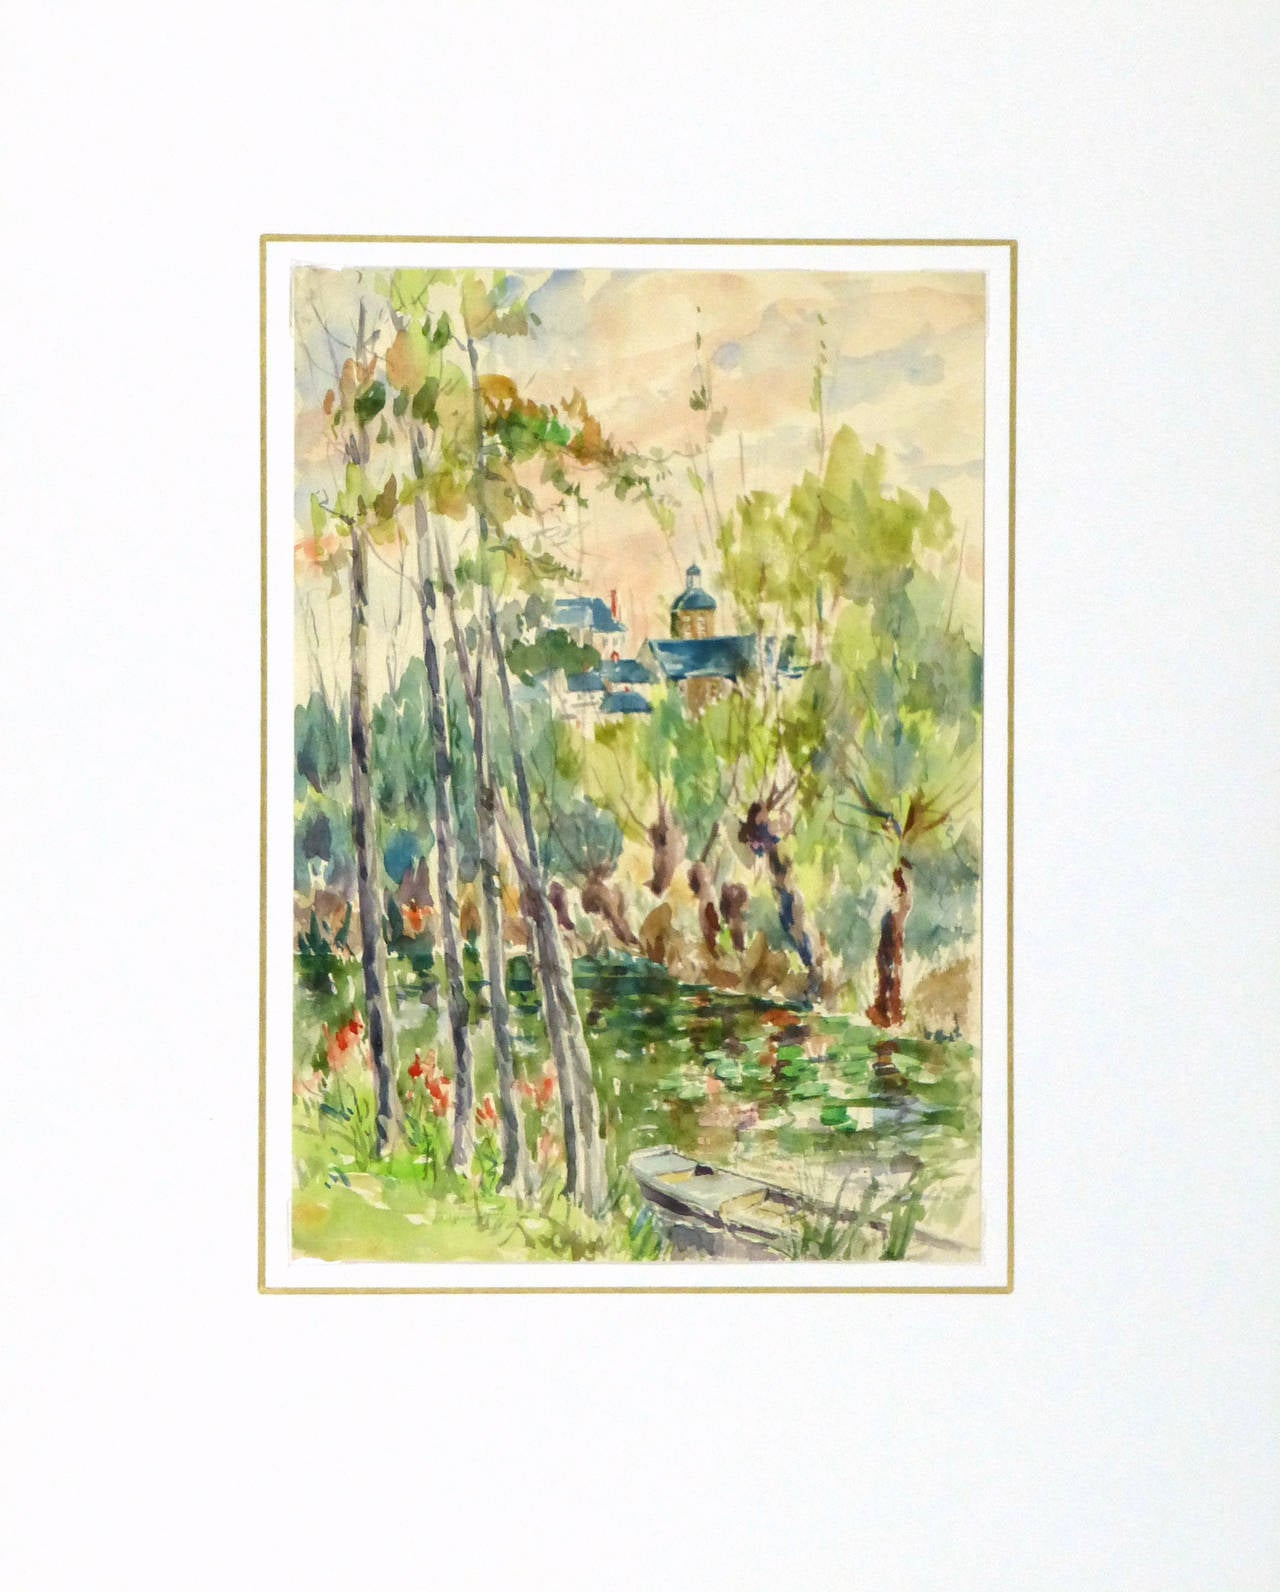 Lively French watercolor of peaceful country tranquility along the river bank while town buildings peep out by artist Roger Tochon, circa 1930.  Original vintage one-of-a-kind artwork on paper displayed on a white mat with a gold border. Mat fits